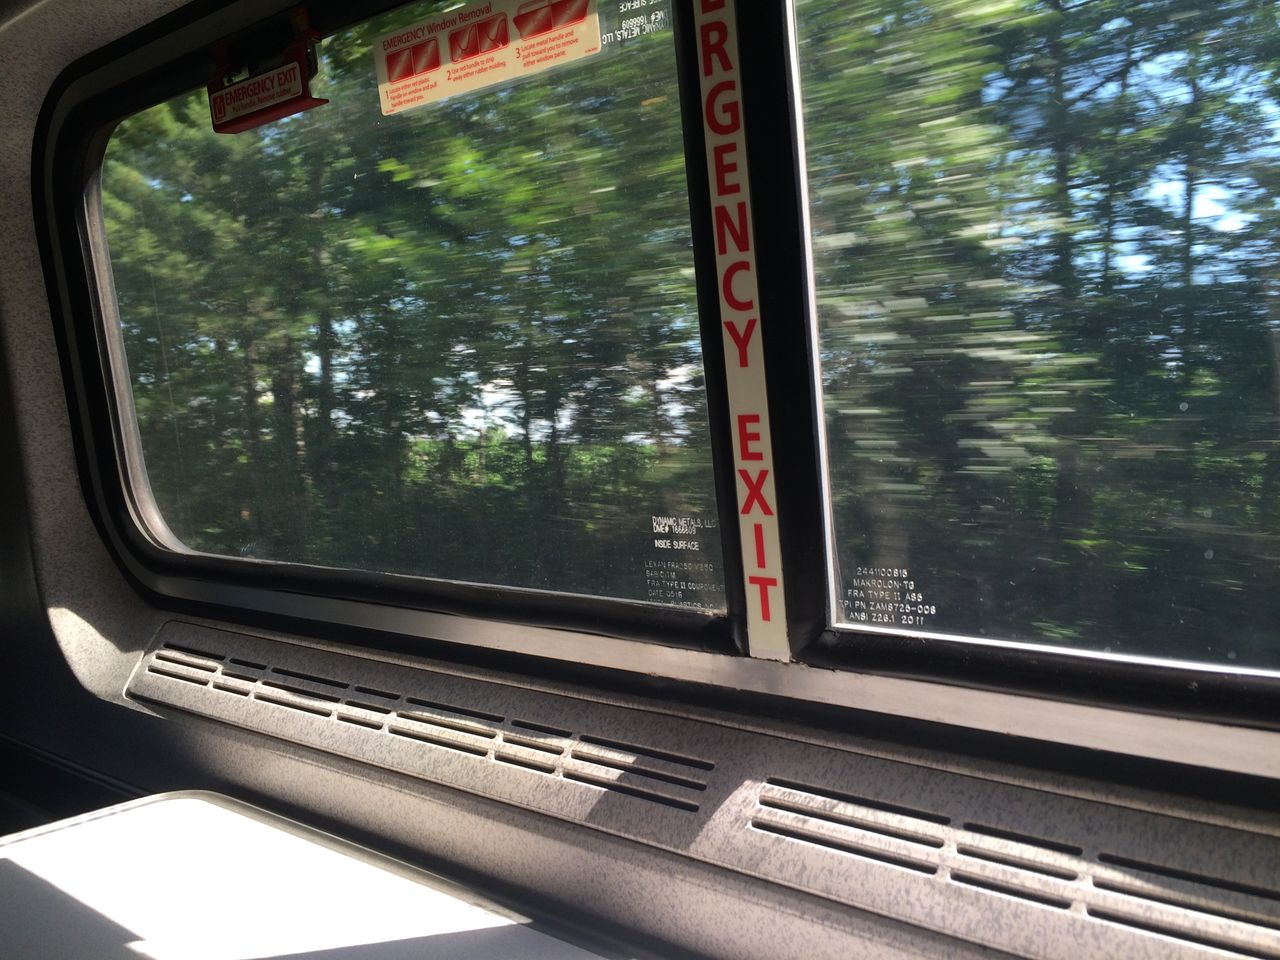 CLOSE-UP OF CAR WINDOW WITH REFLECTION